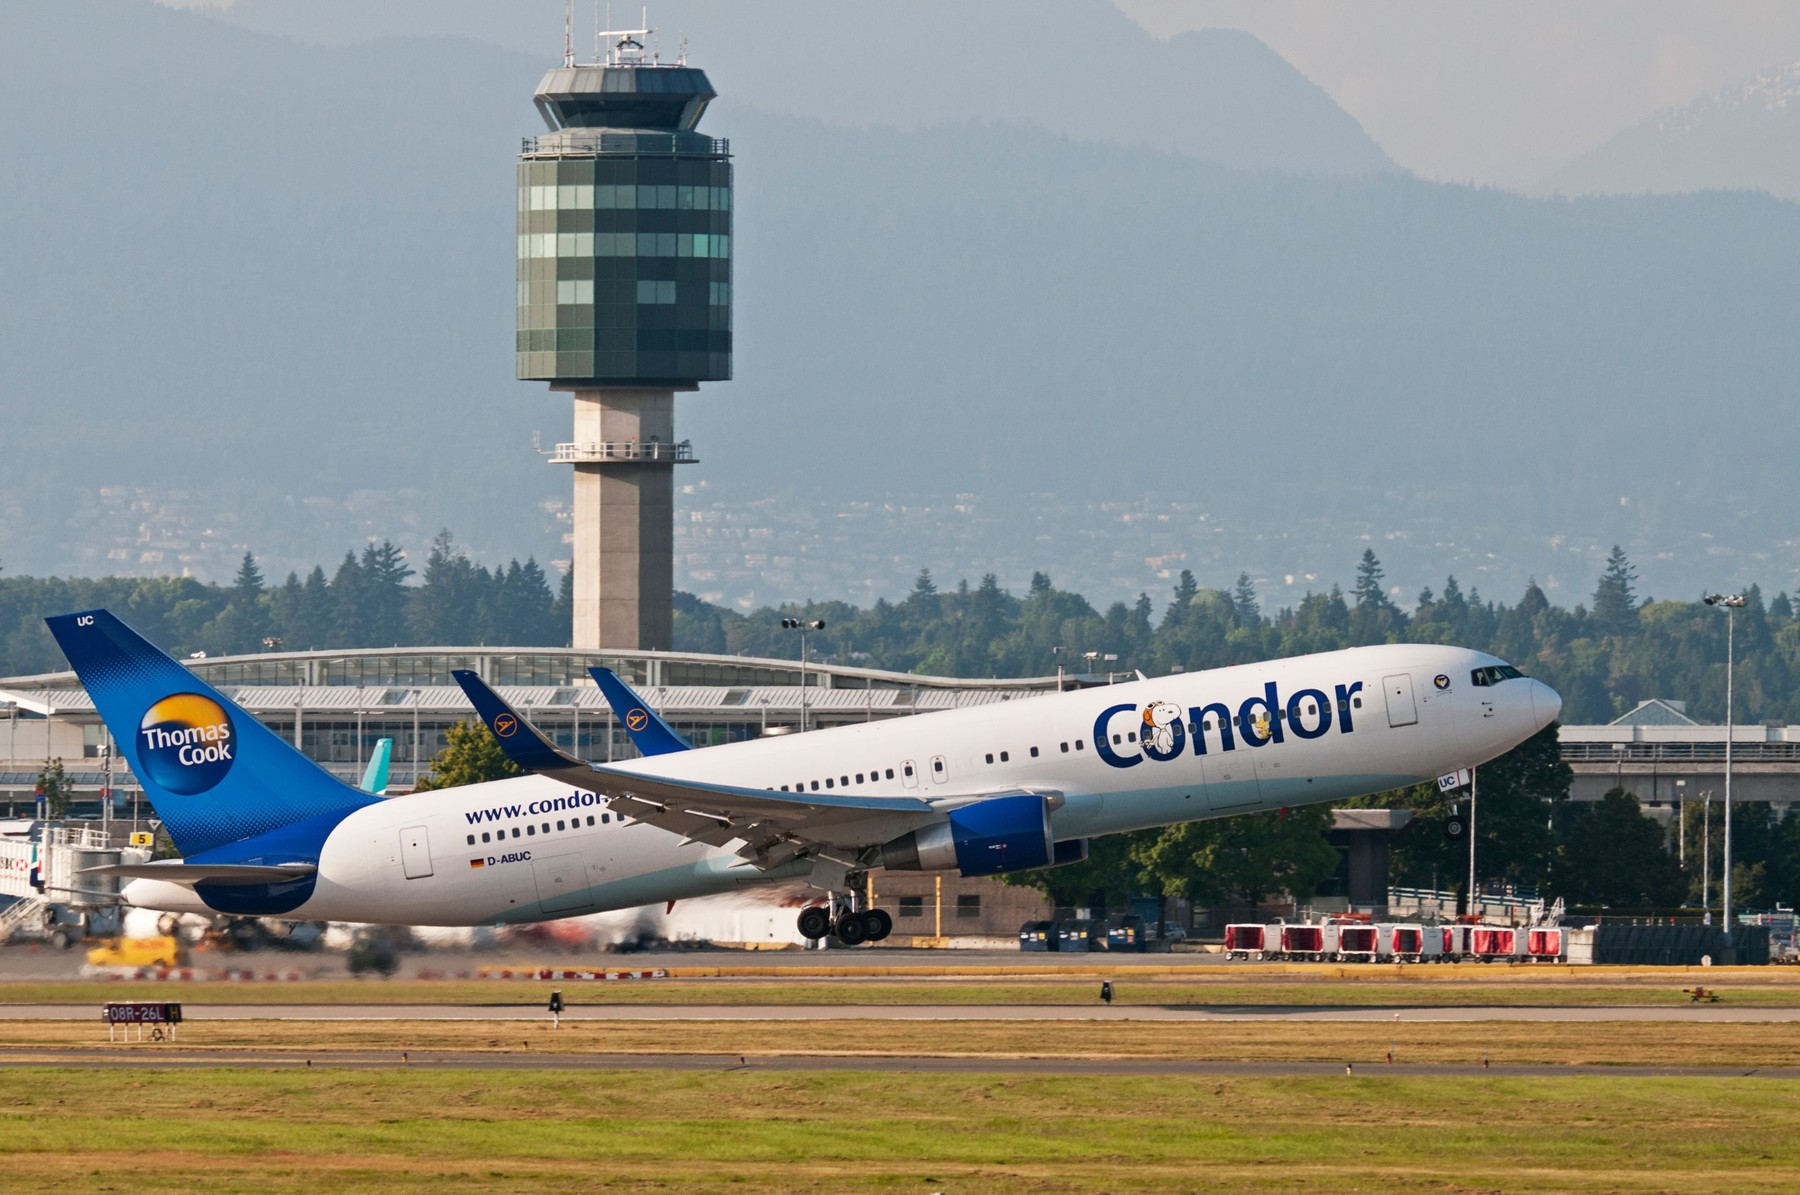 A Condor (Thomas Cook) Boeing 757 jetliner takes off from Vancouver International Airport. The airport's distinctive control tower can be seen in the background., Image: 121041691, License: Rights-managed, Restrictions: , Model Release: no, Credit line: Bayne Stanley / Alamy / Alamy / Profimedia